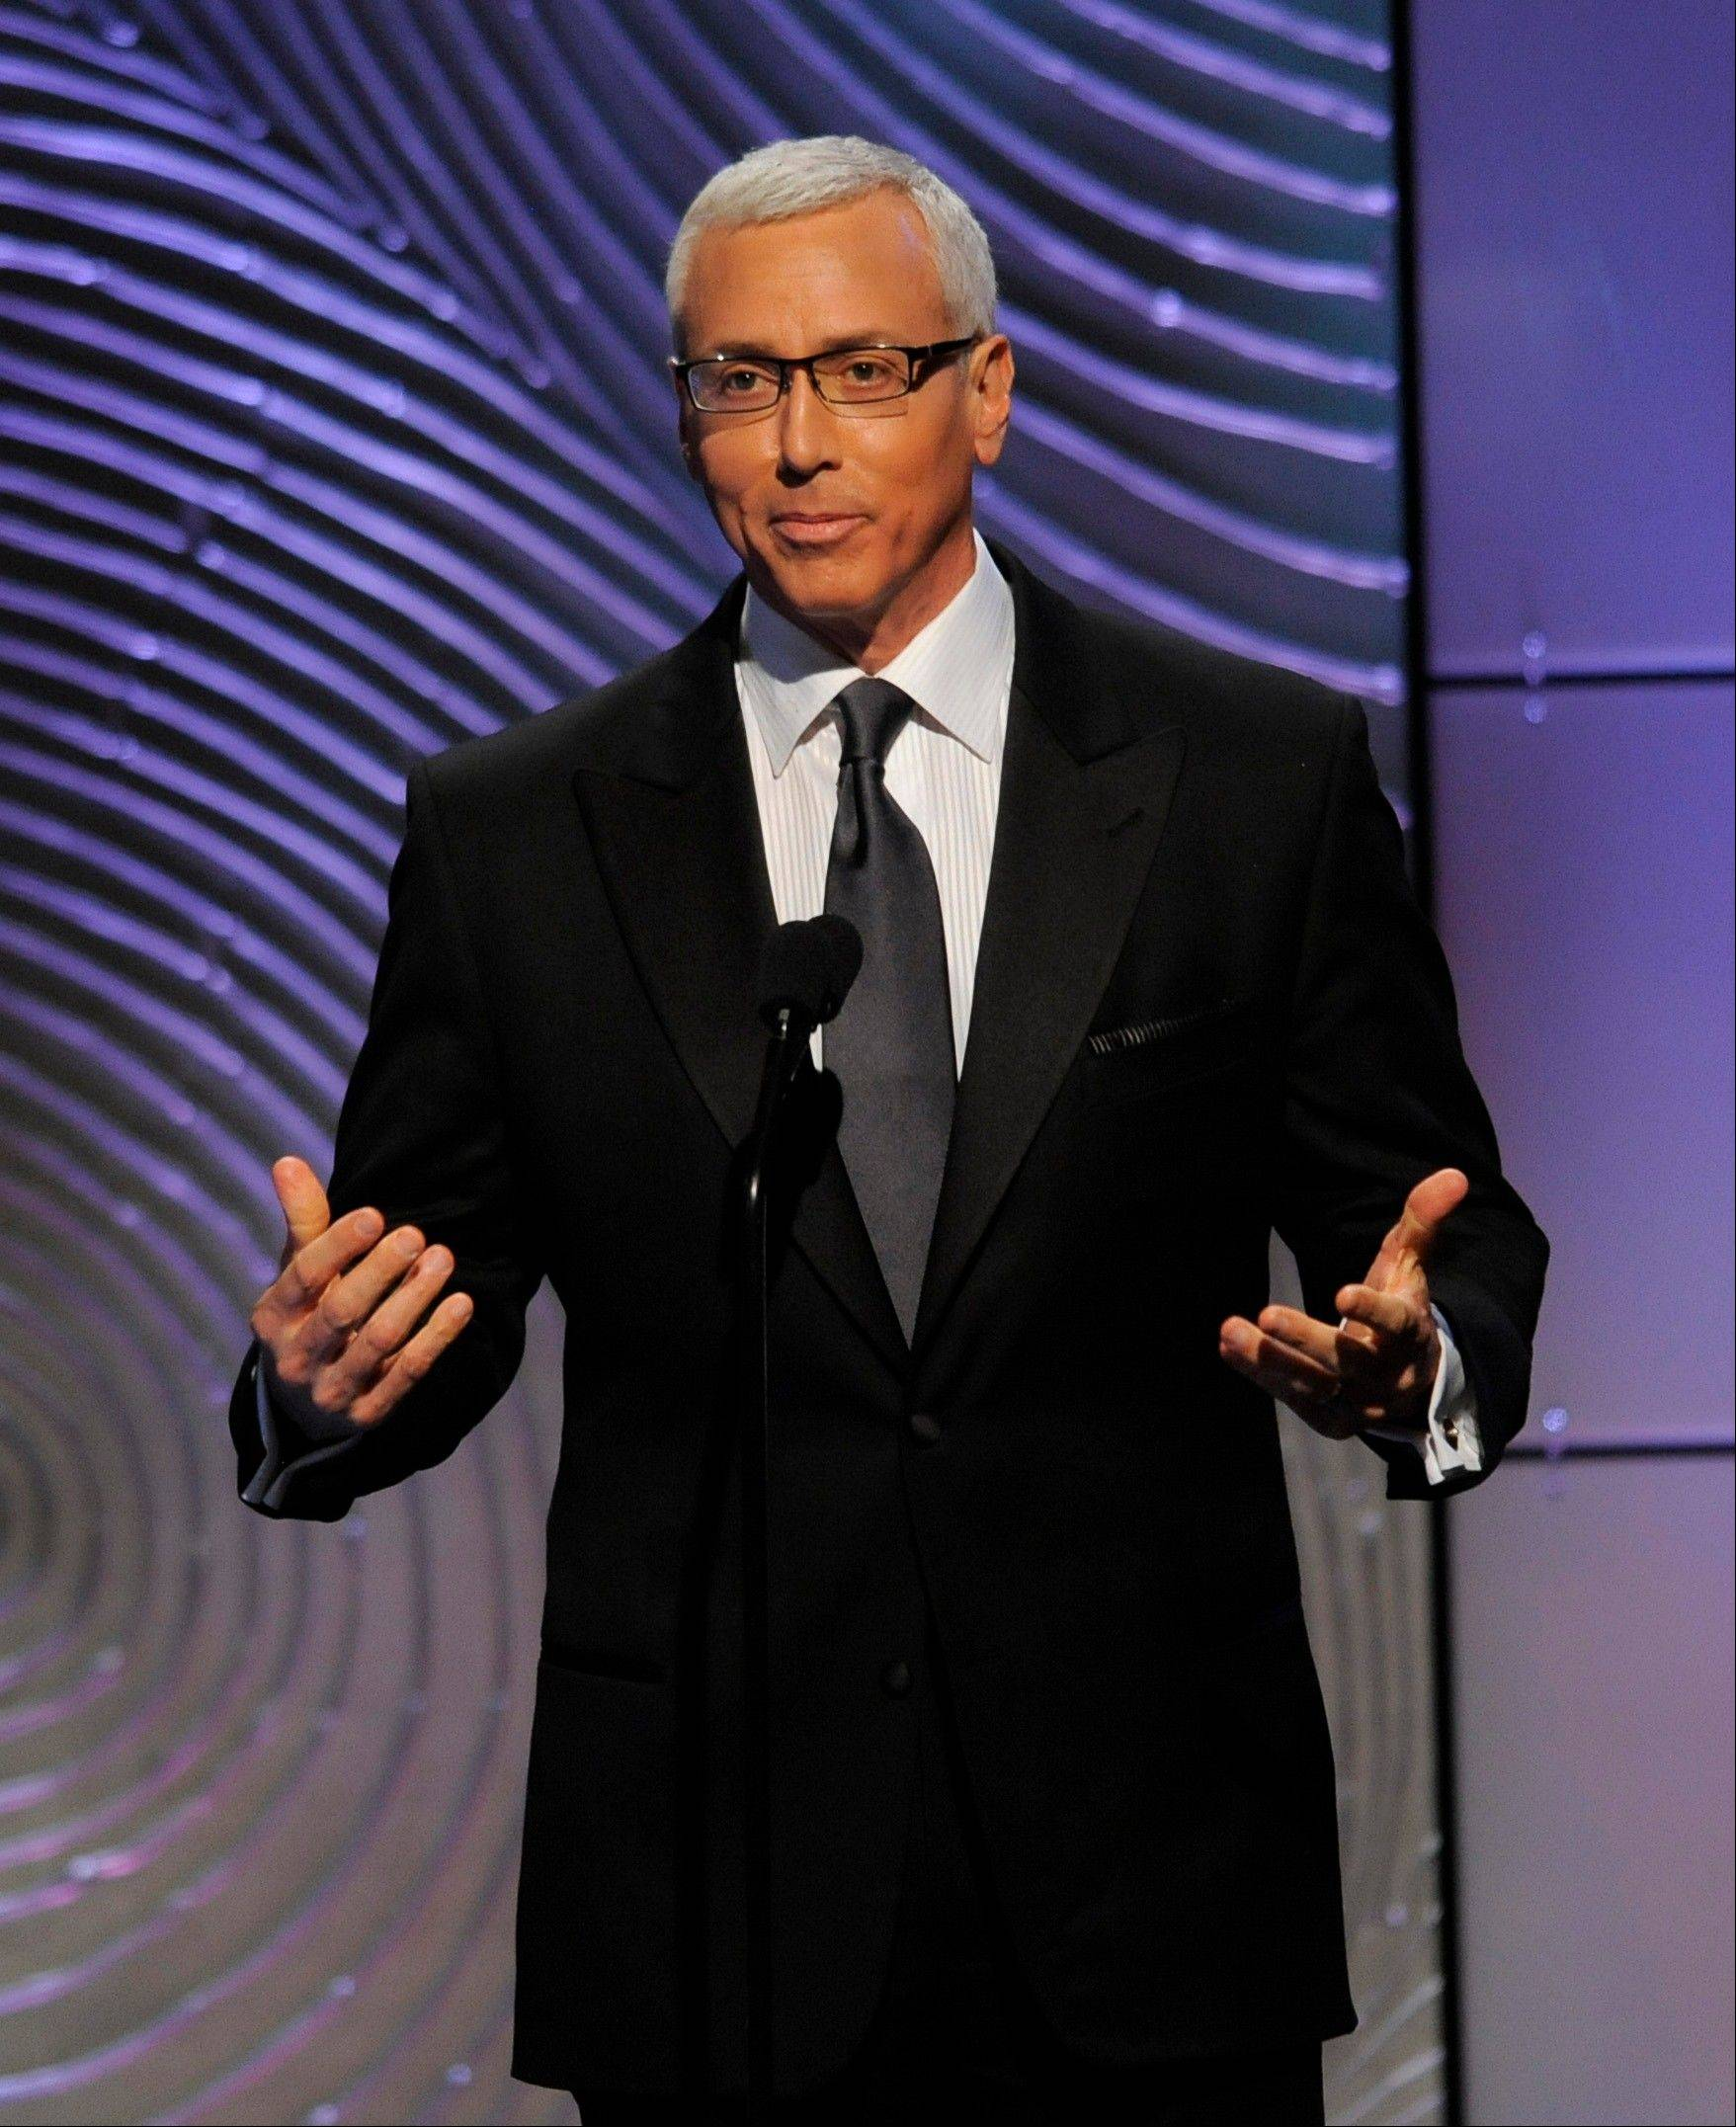 Dr. Drew Pinsky speaks on stage at the 40th Annual Daytime Emmy Awards on Sunday, June 16, 2013, in Beverly Hills, Calif.